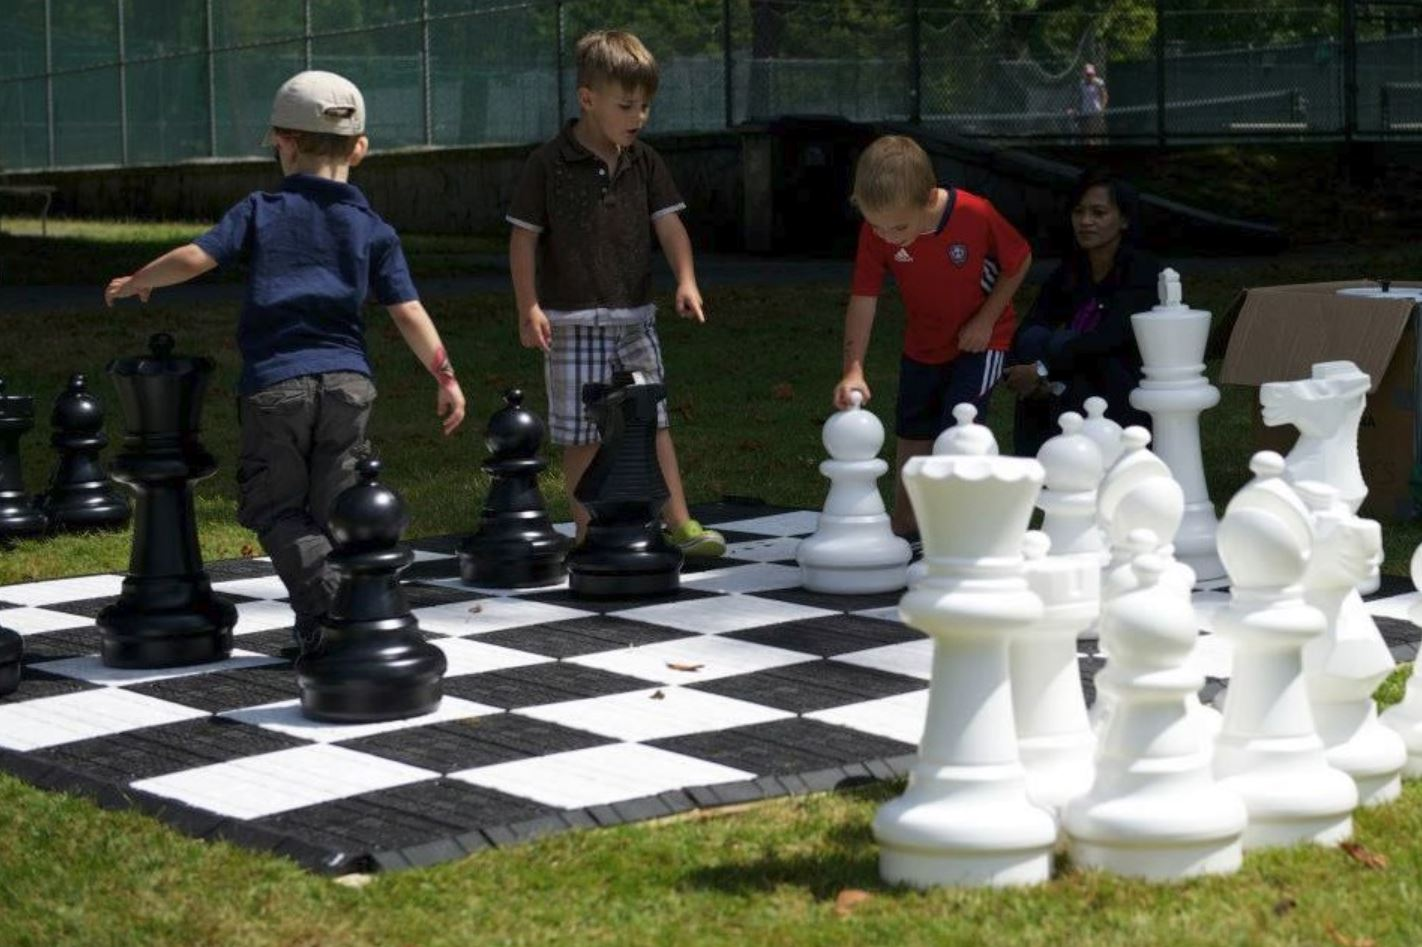 Jumbo Chess Event Rental - Sunrise Florida Party Rentals - Fort Lauderdale 786-423-8759